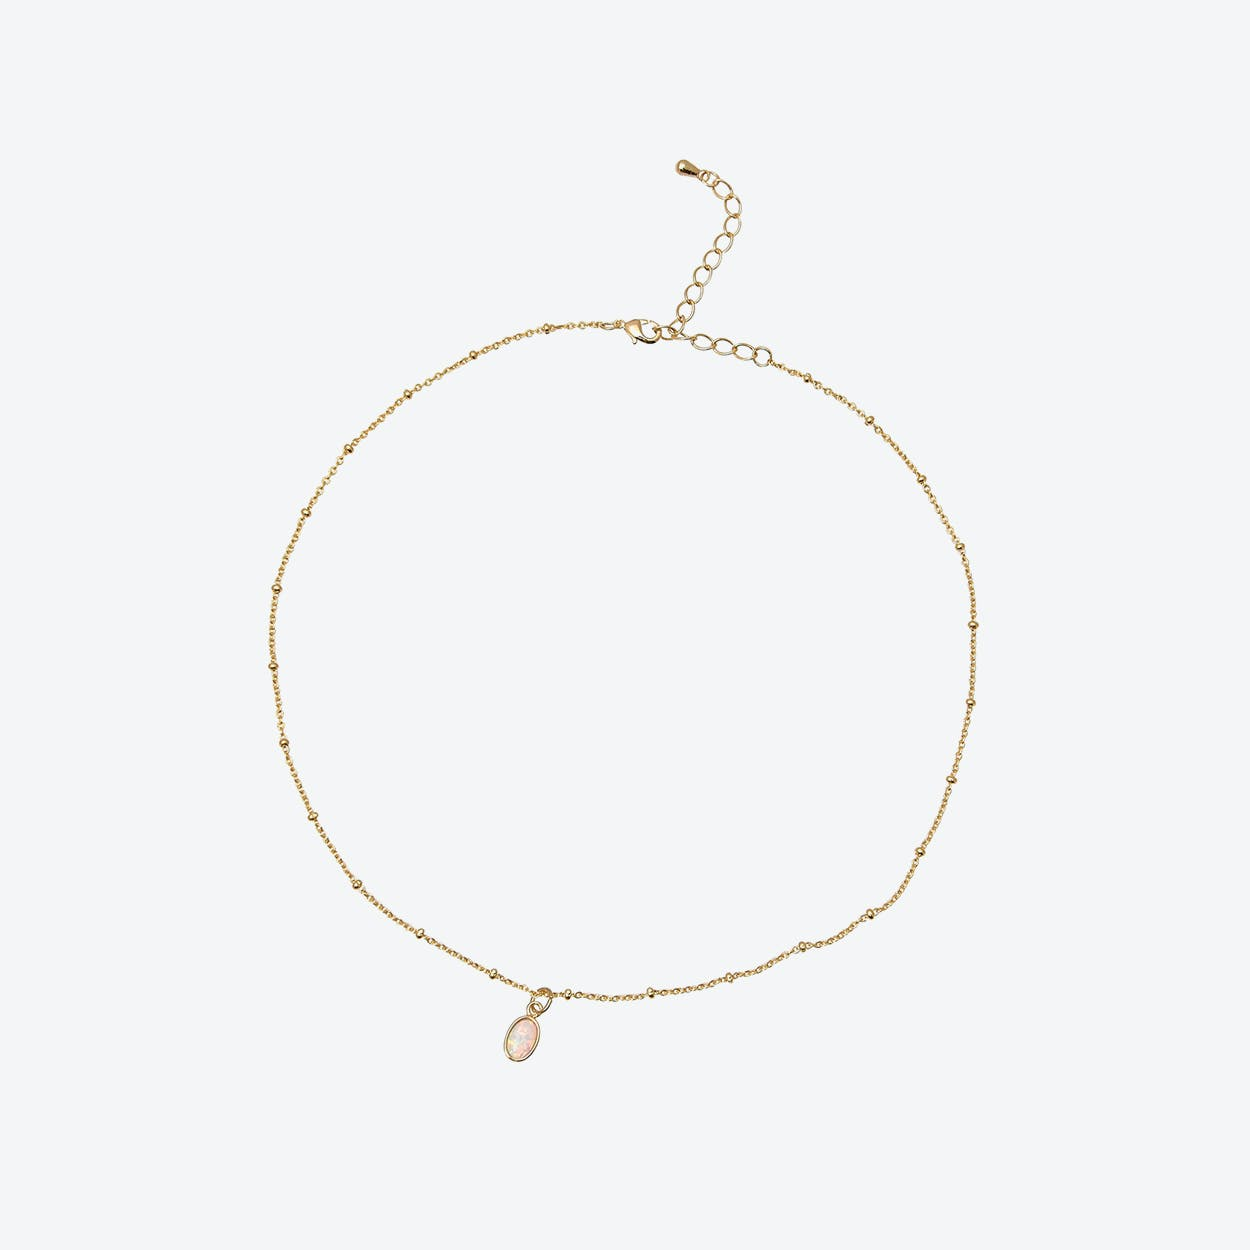 Gold Delicate Chain with Opal Choker